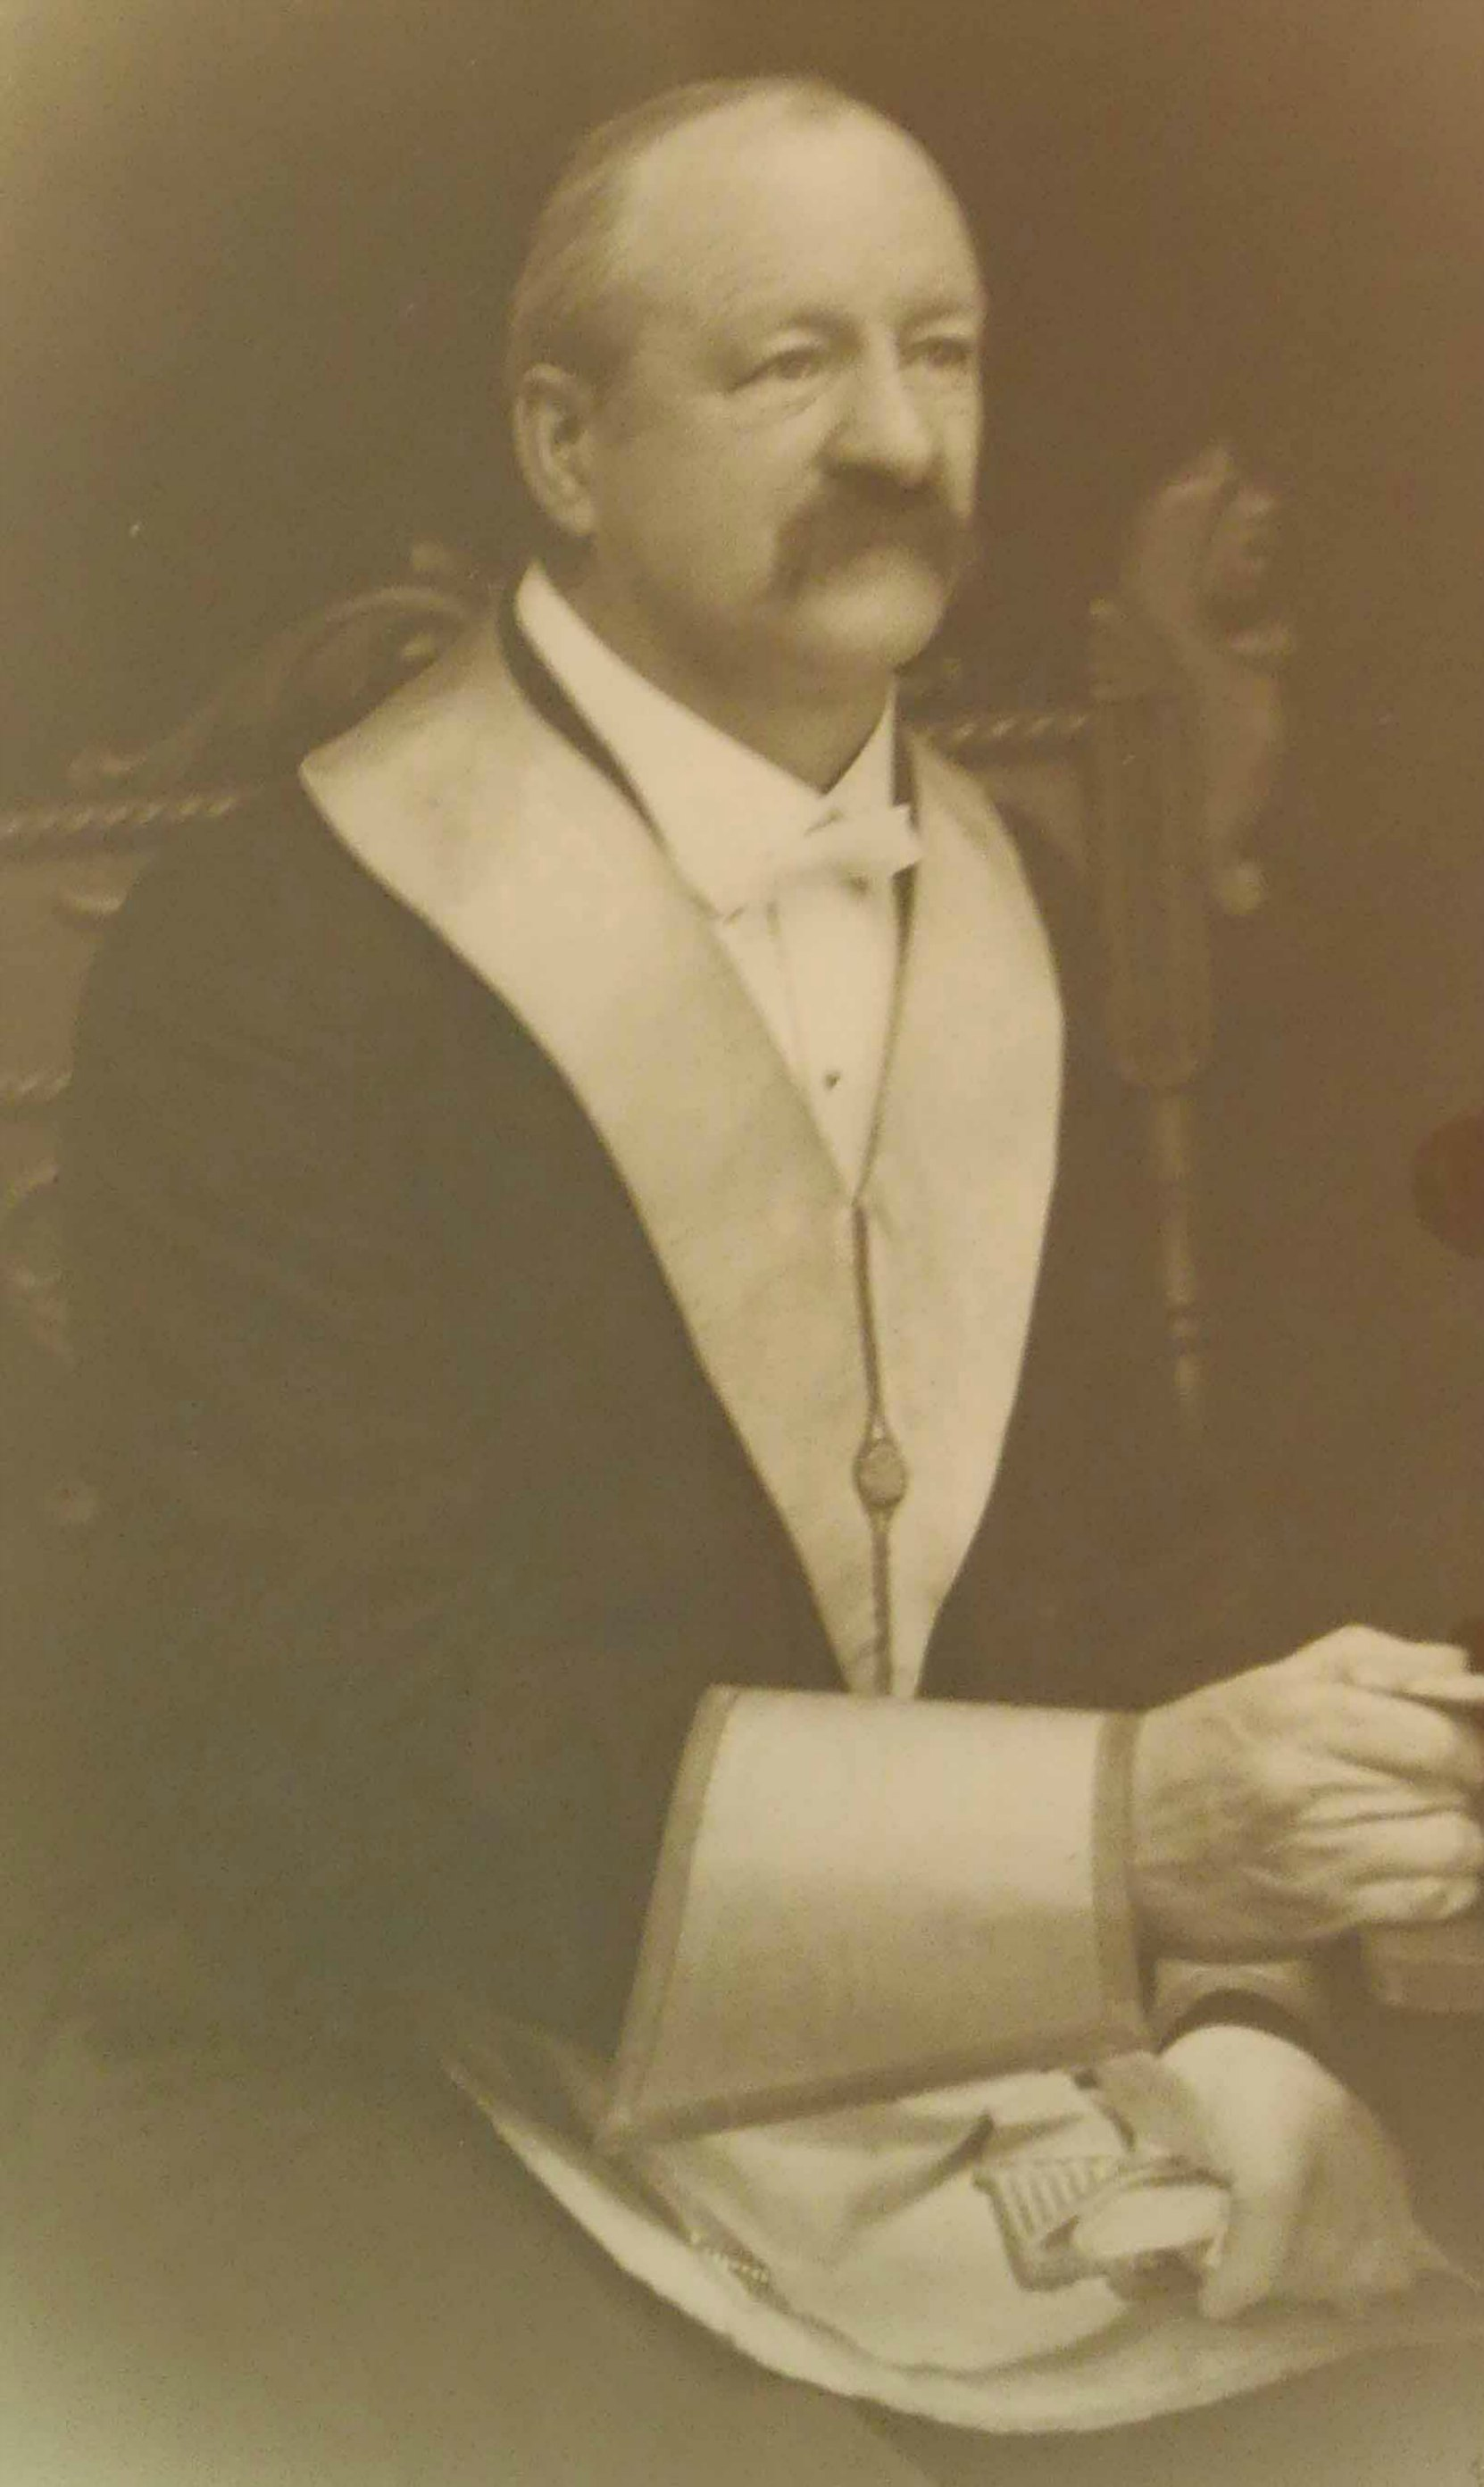 Roland Clayton Fawcett in Masonic regalia, circa 1915 (Photo courtesy of Temple Lodge, No.33 A.F.&A.M.)